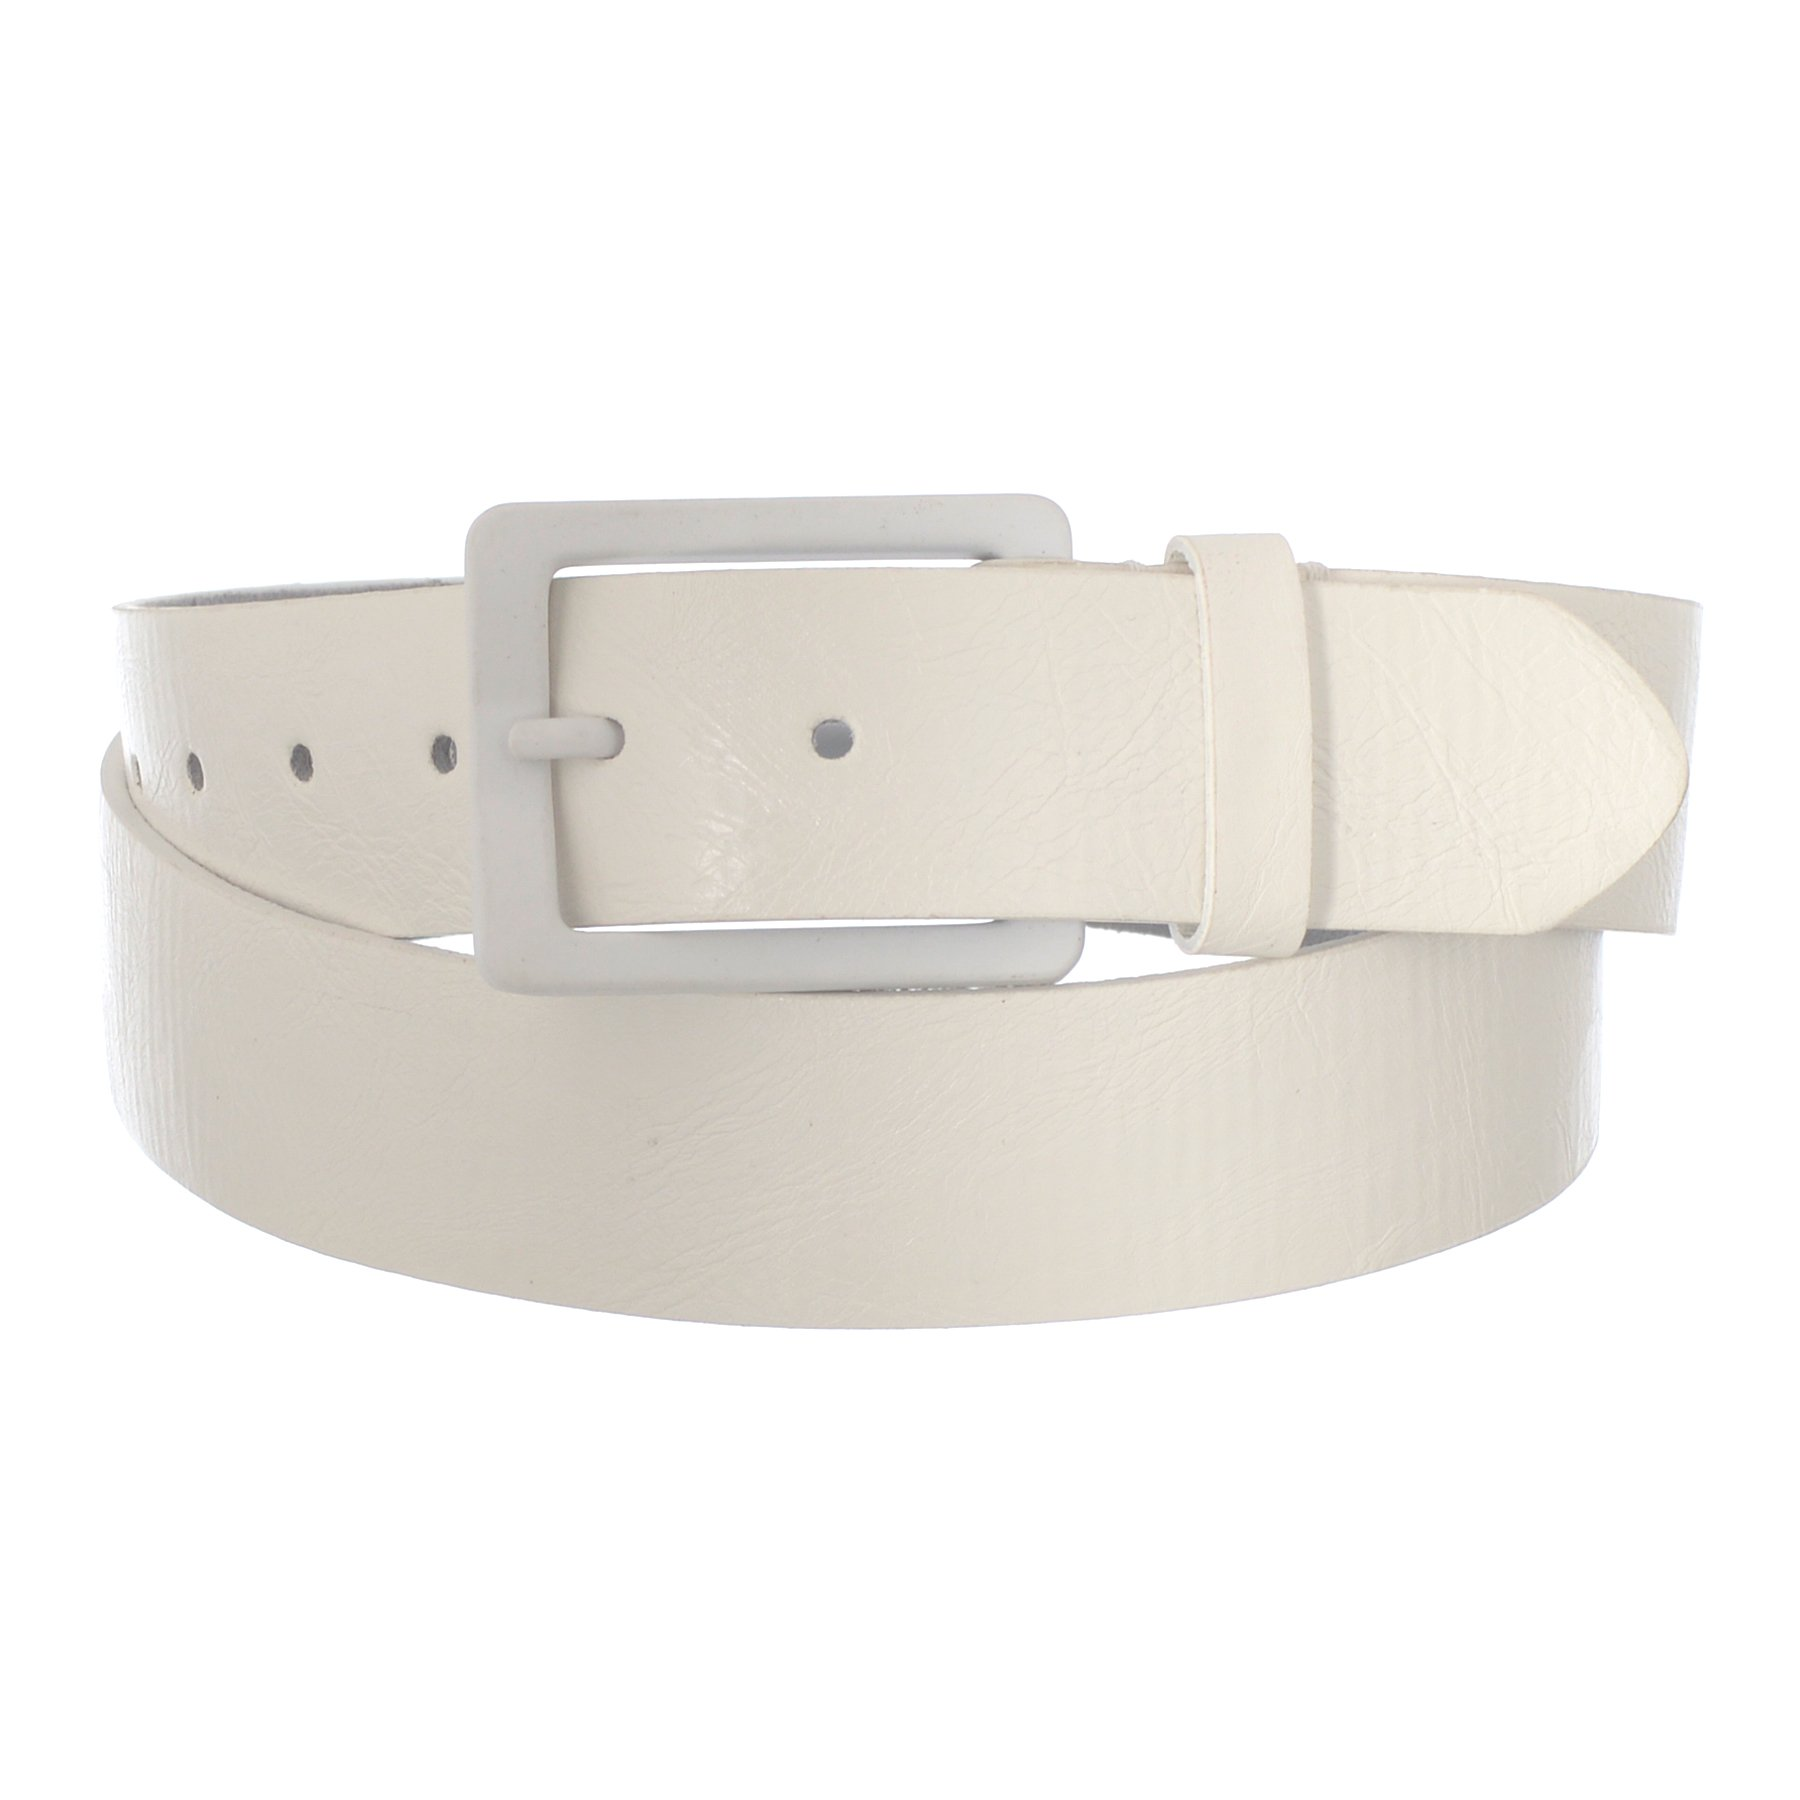 Xcessoire Men's Casual Fashion Belt with Single Prong Buckle (30, White) by Xcessoire (Image #1)